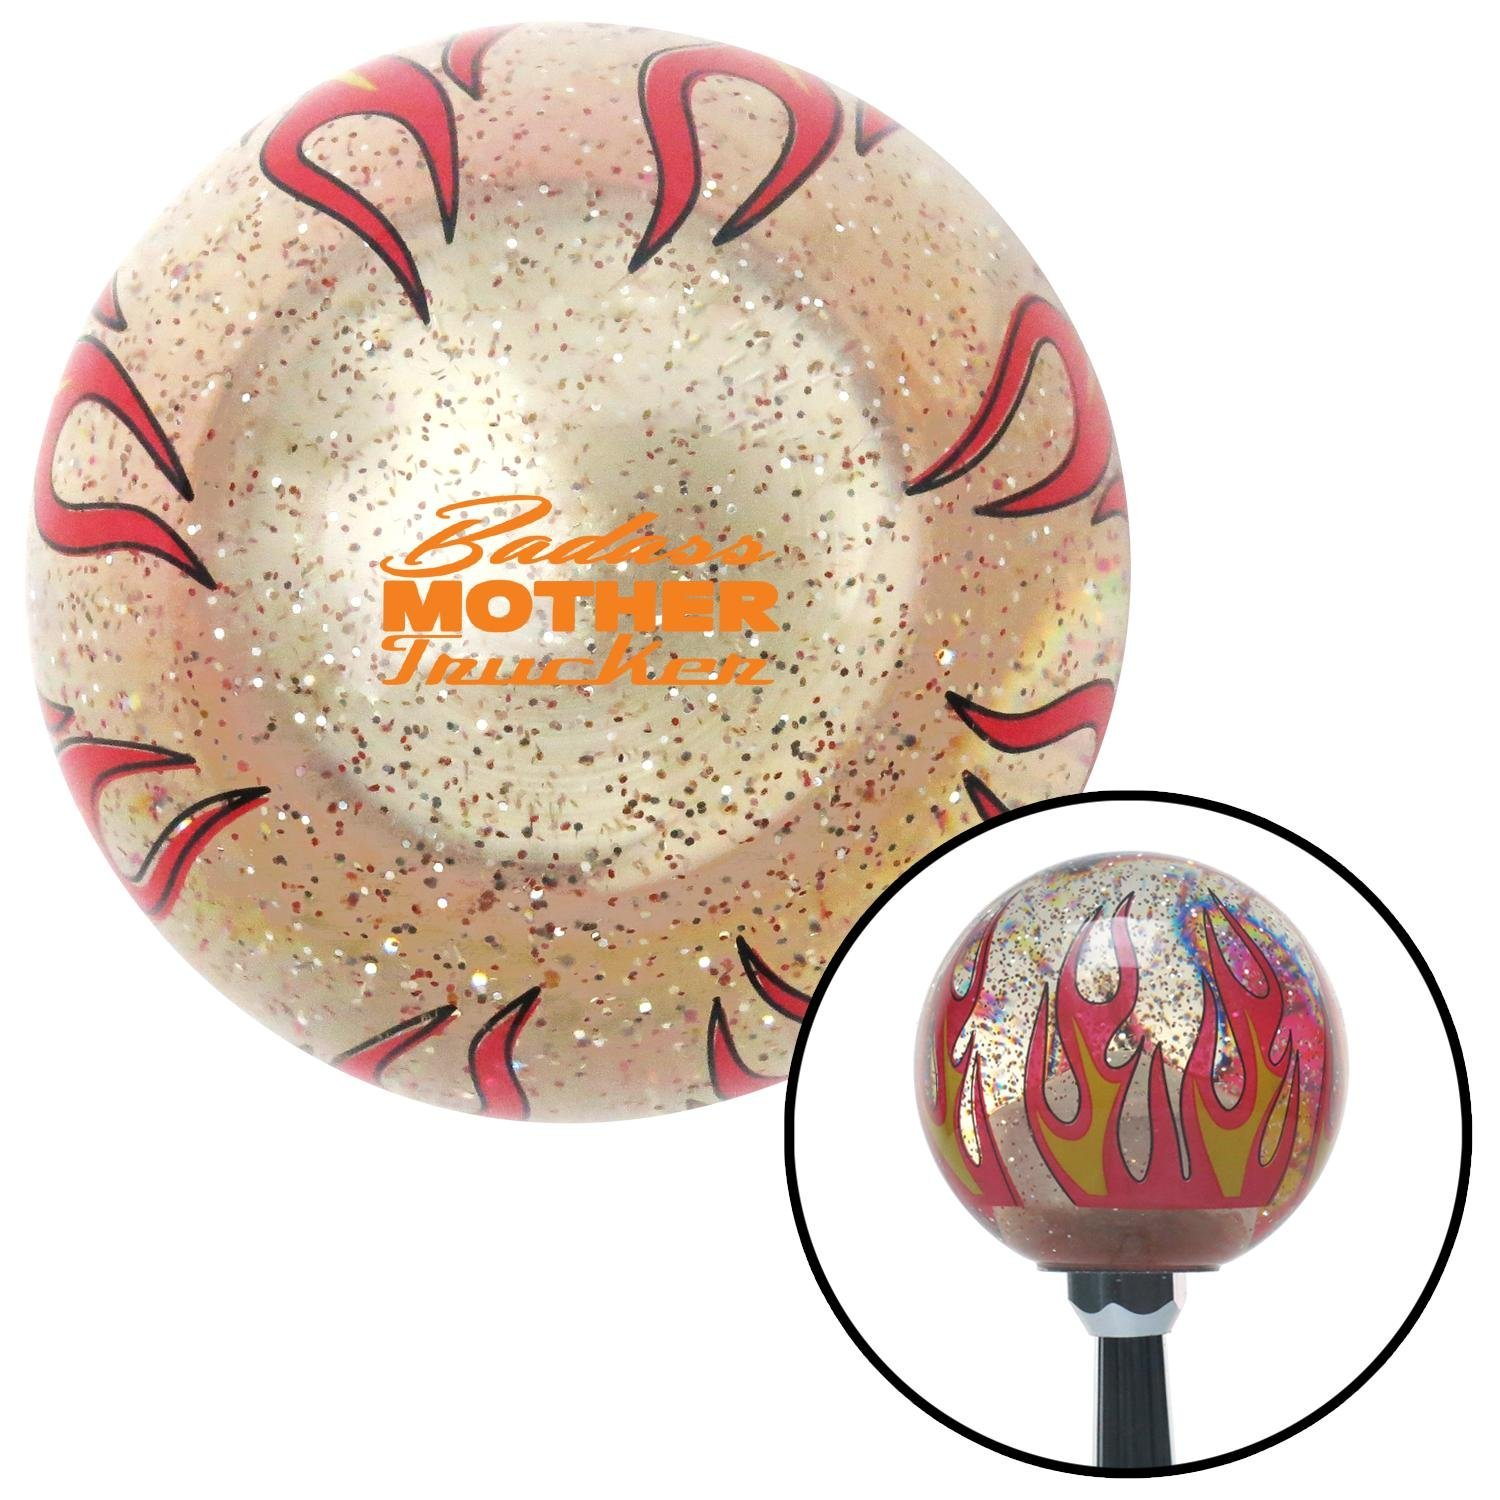 Orange Badass Mother Trucker Clear Flame Metal Flake American Shifter 296143 Shift Knob